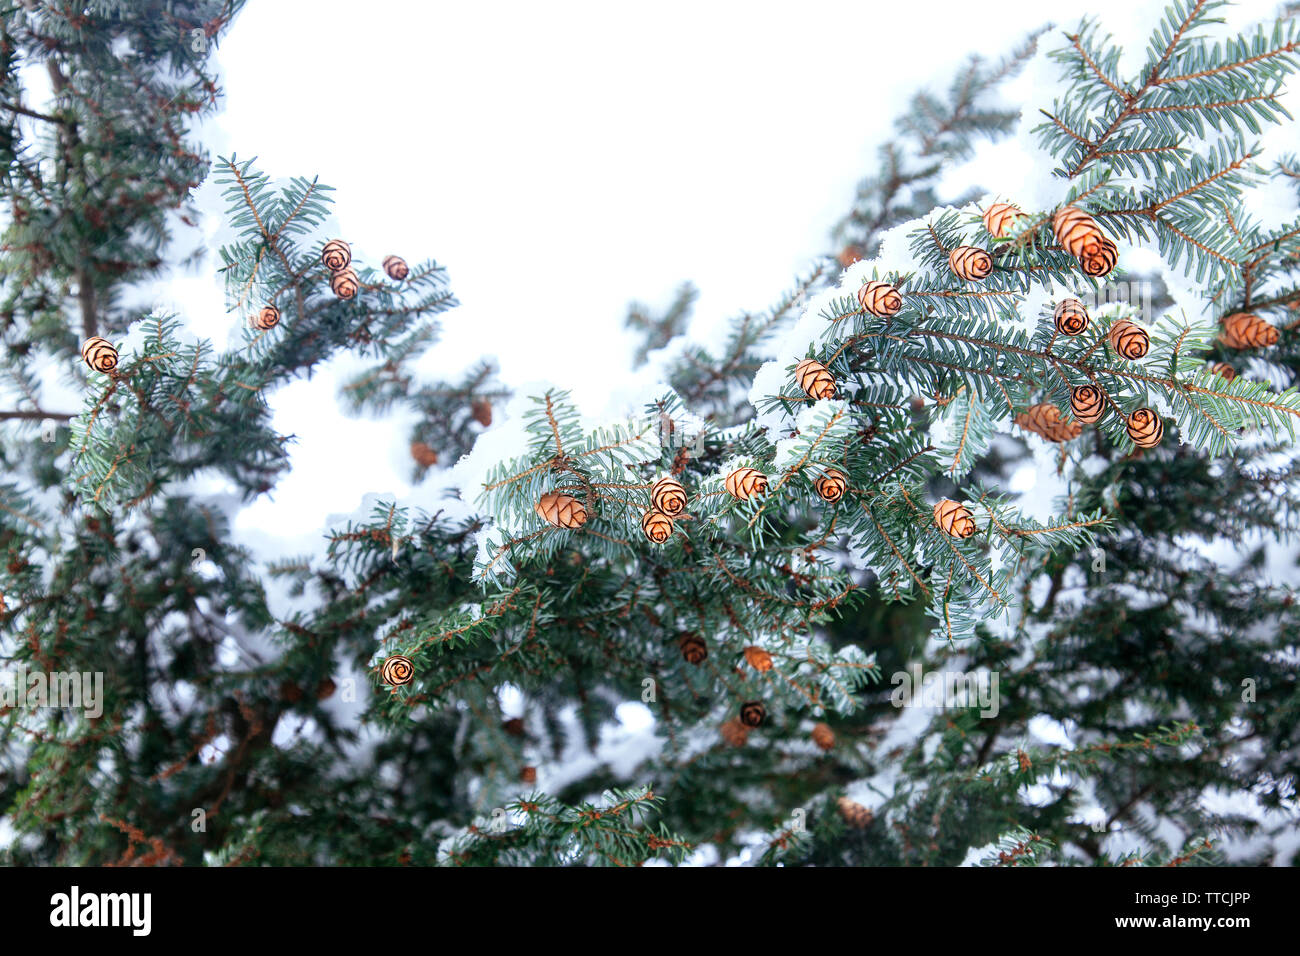 Small cones on the branches of the needles are covered with white snow. Pine with snow decoration for winter season. Stock Photo